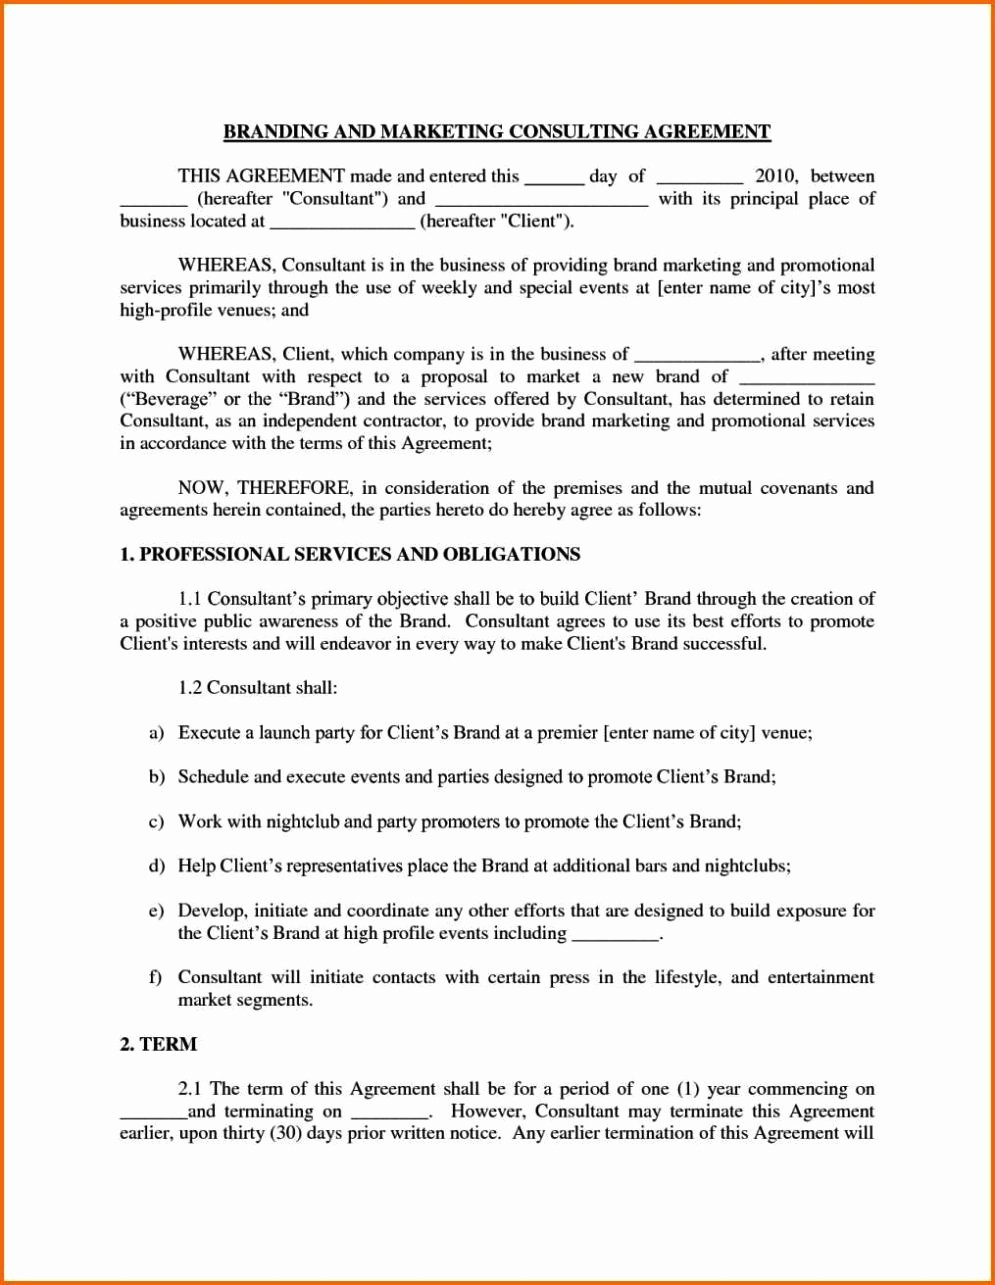 Marketing Consultant Contract Template Inspirational Marketing Consulting Agreement Template Sampletemplatess